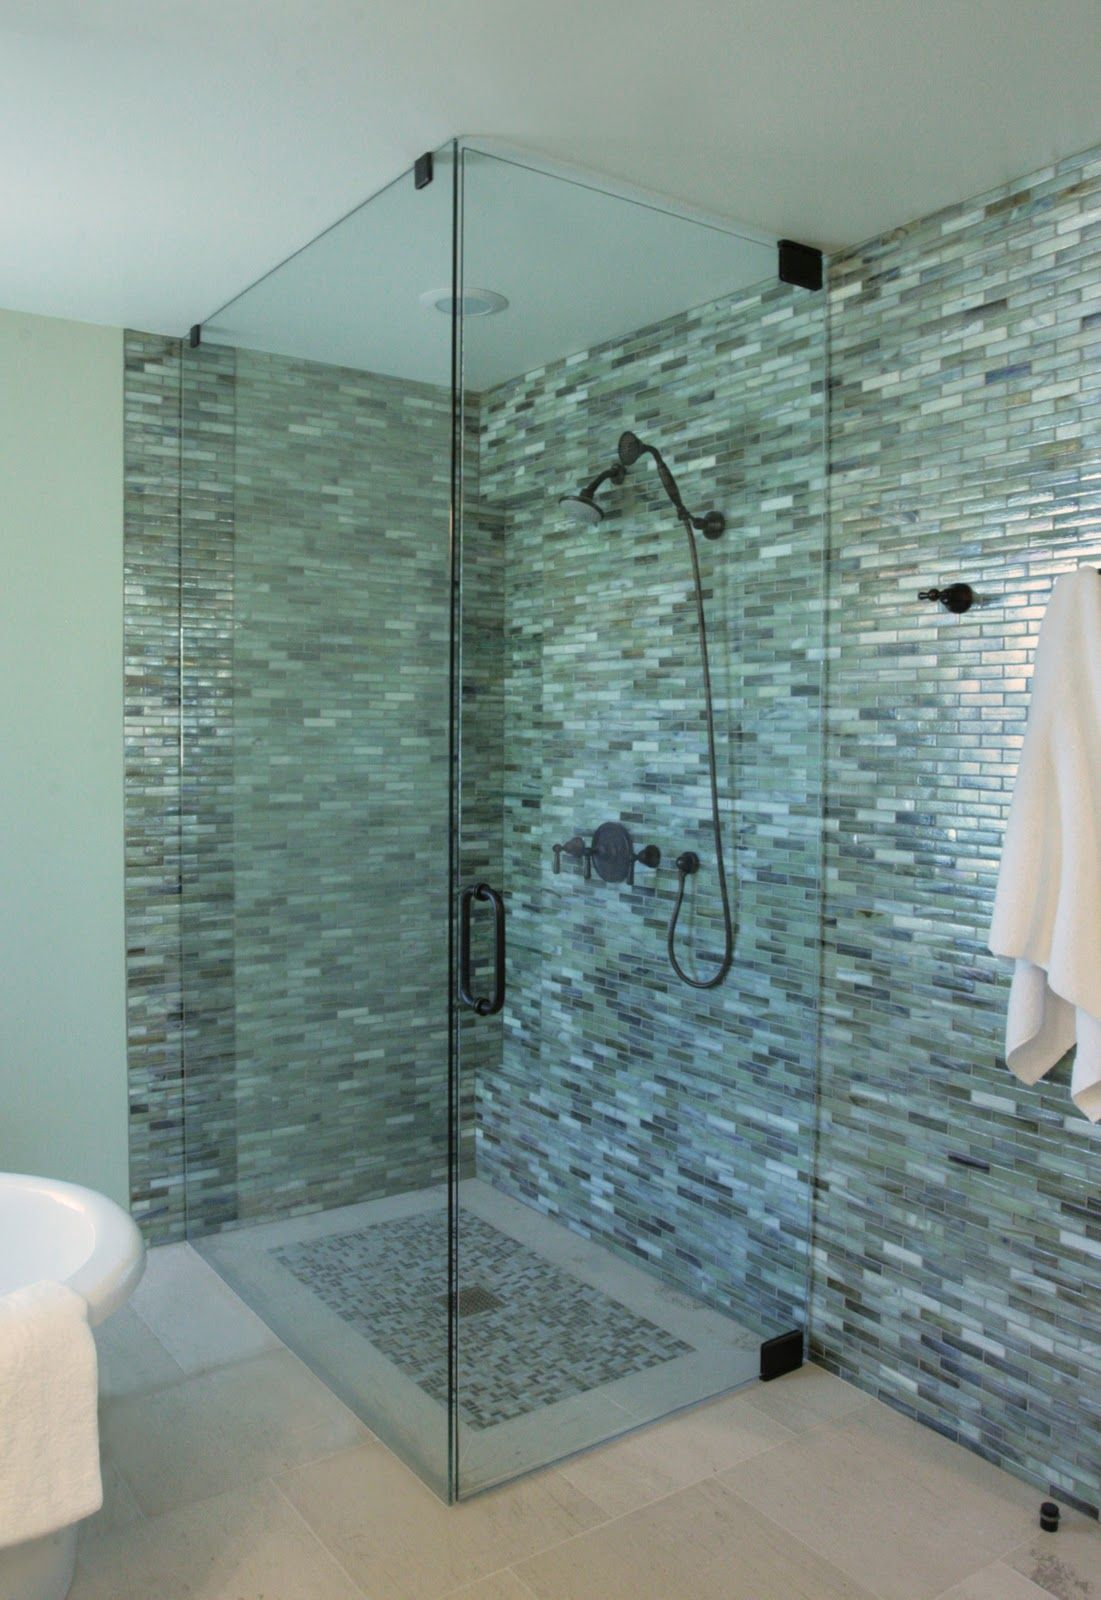 Green glass bathroom tile - Glass Shower With Graceful Blue And Green Plaid Blue Bathroom Glass Tile For Shower Wall With